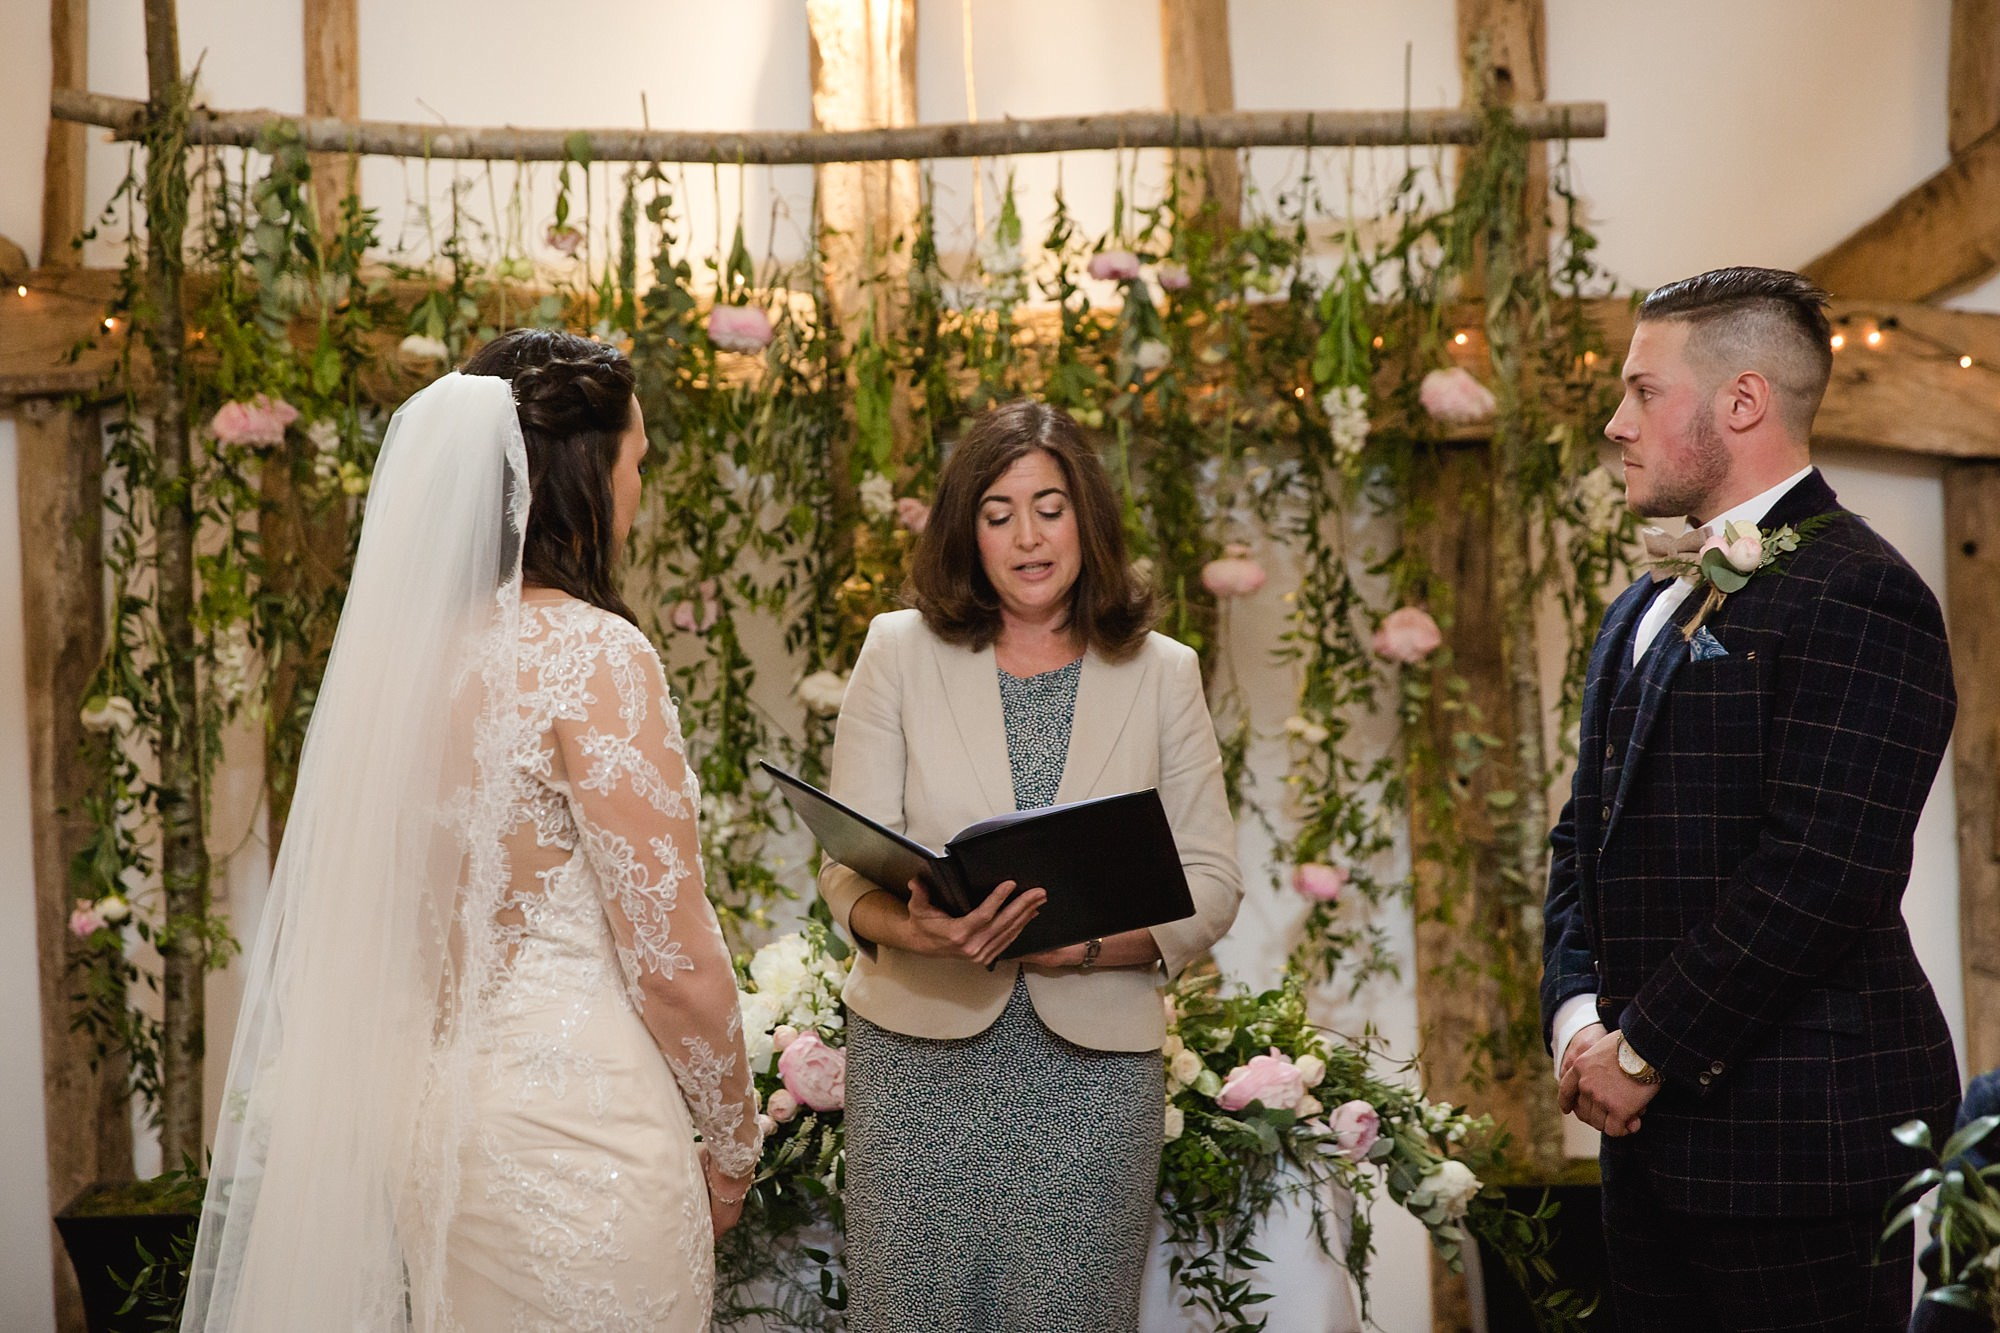 humanist celebrant conducting ceremony at hold greens barn